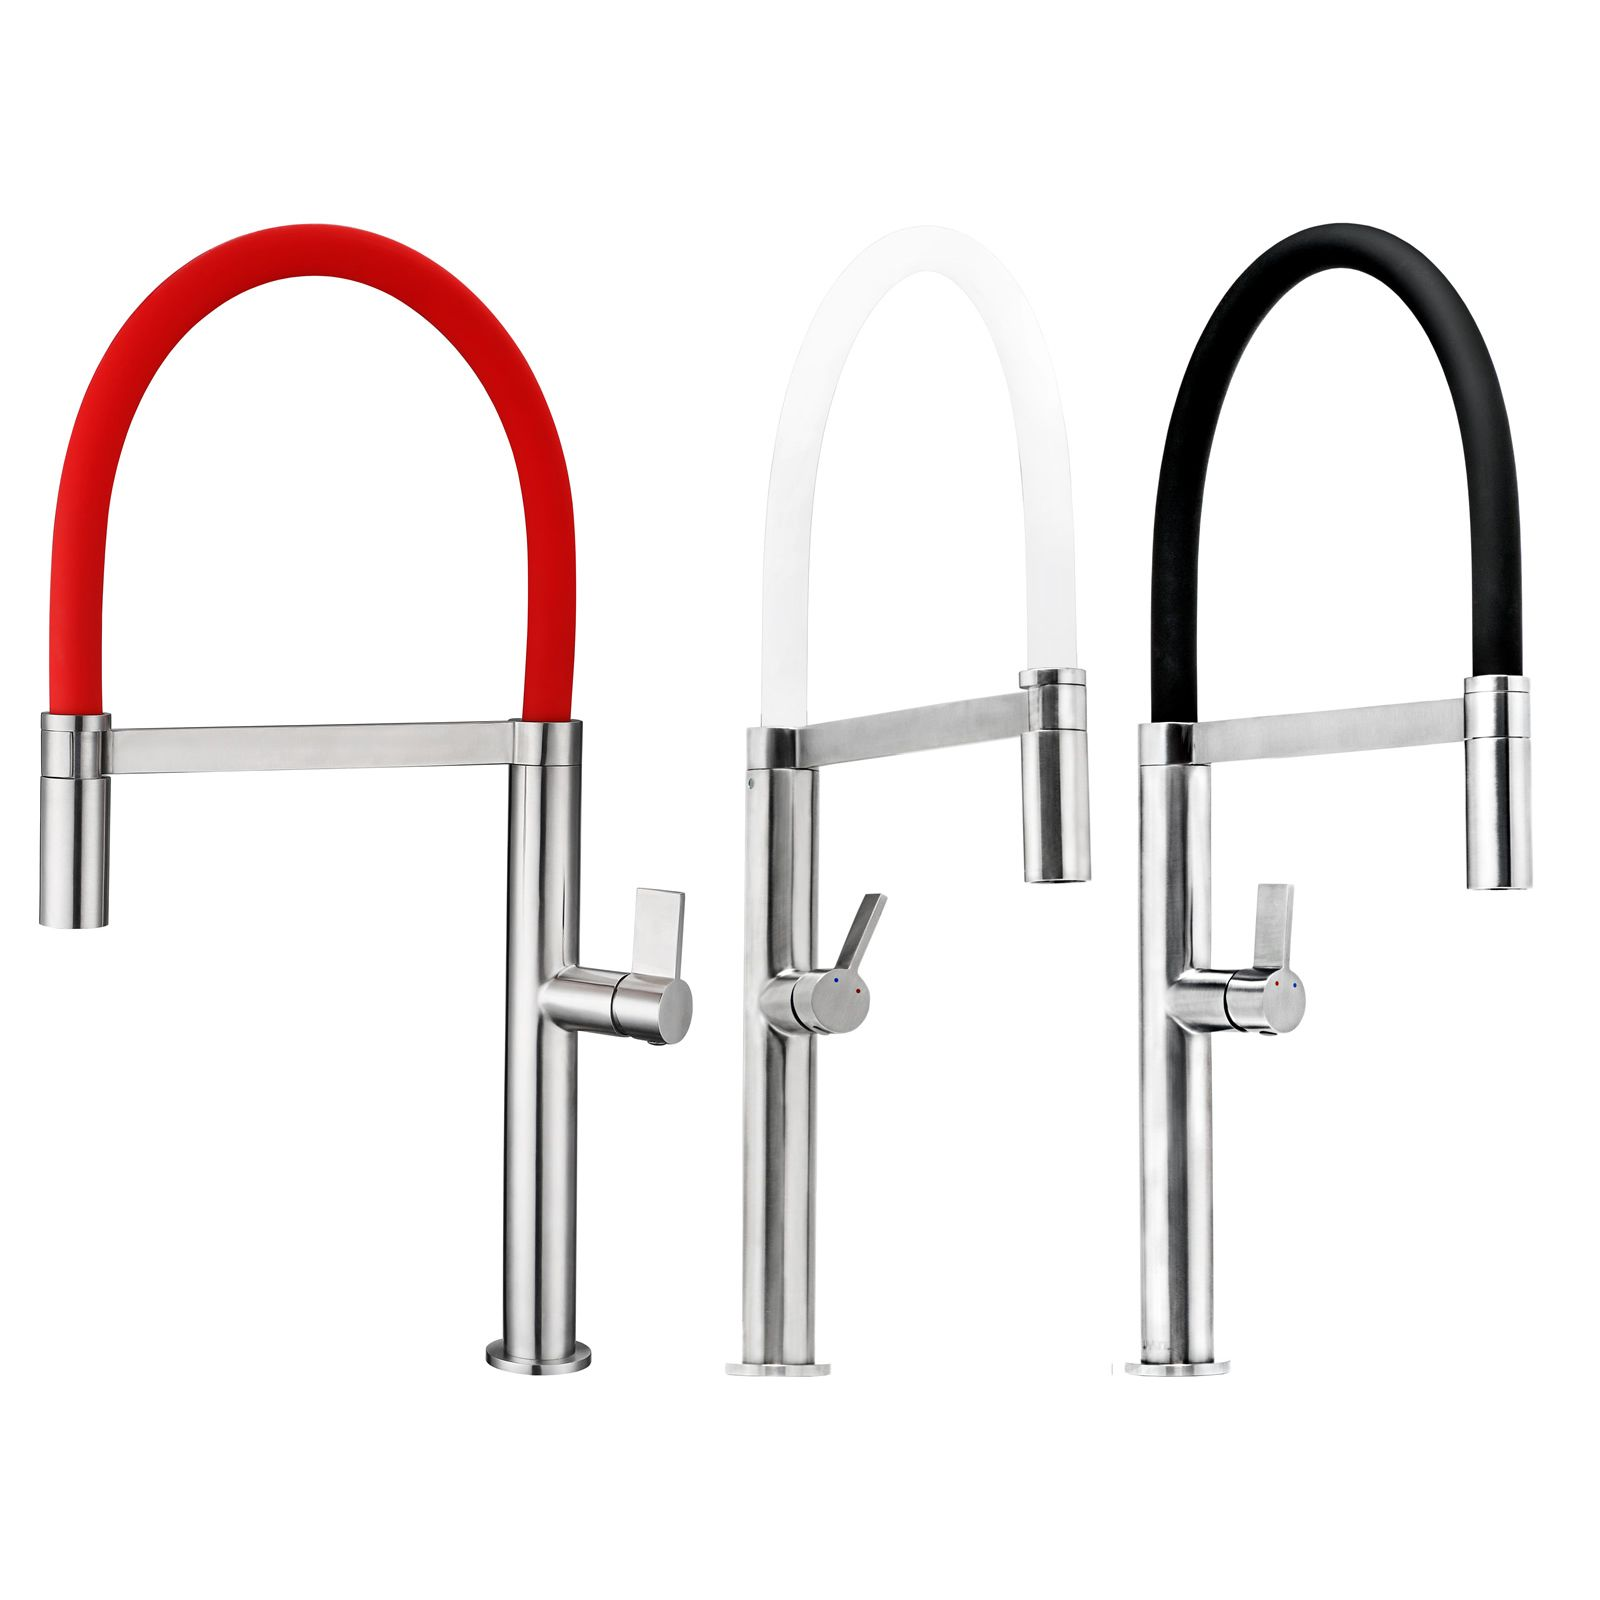 red kitchen faucet ruvati rvf1271st color swatch flexible pull down kitchen faucet black red or white black 4225